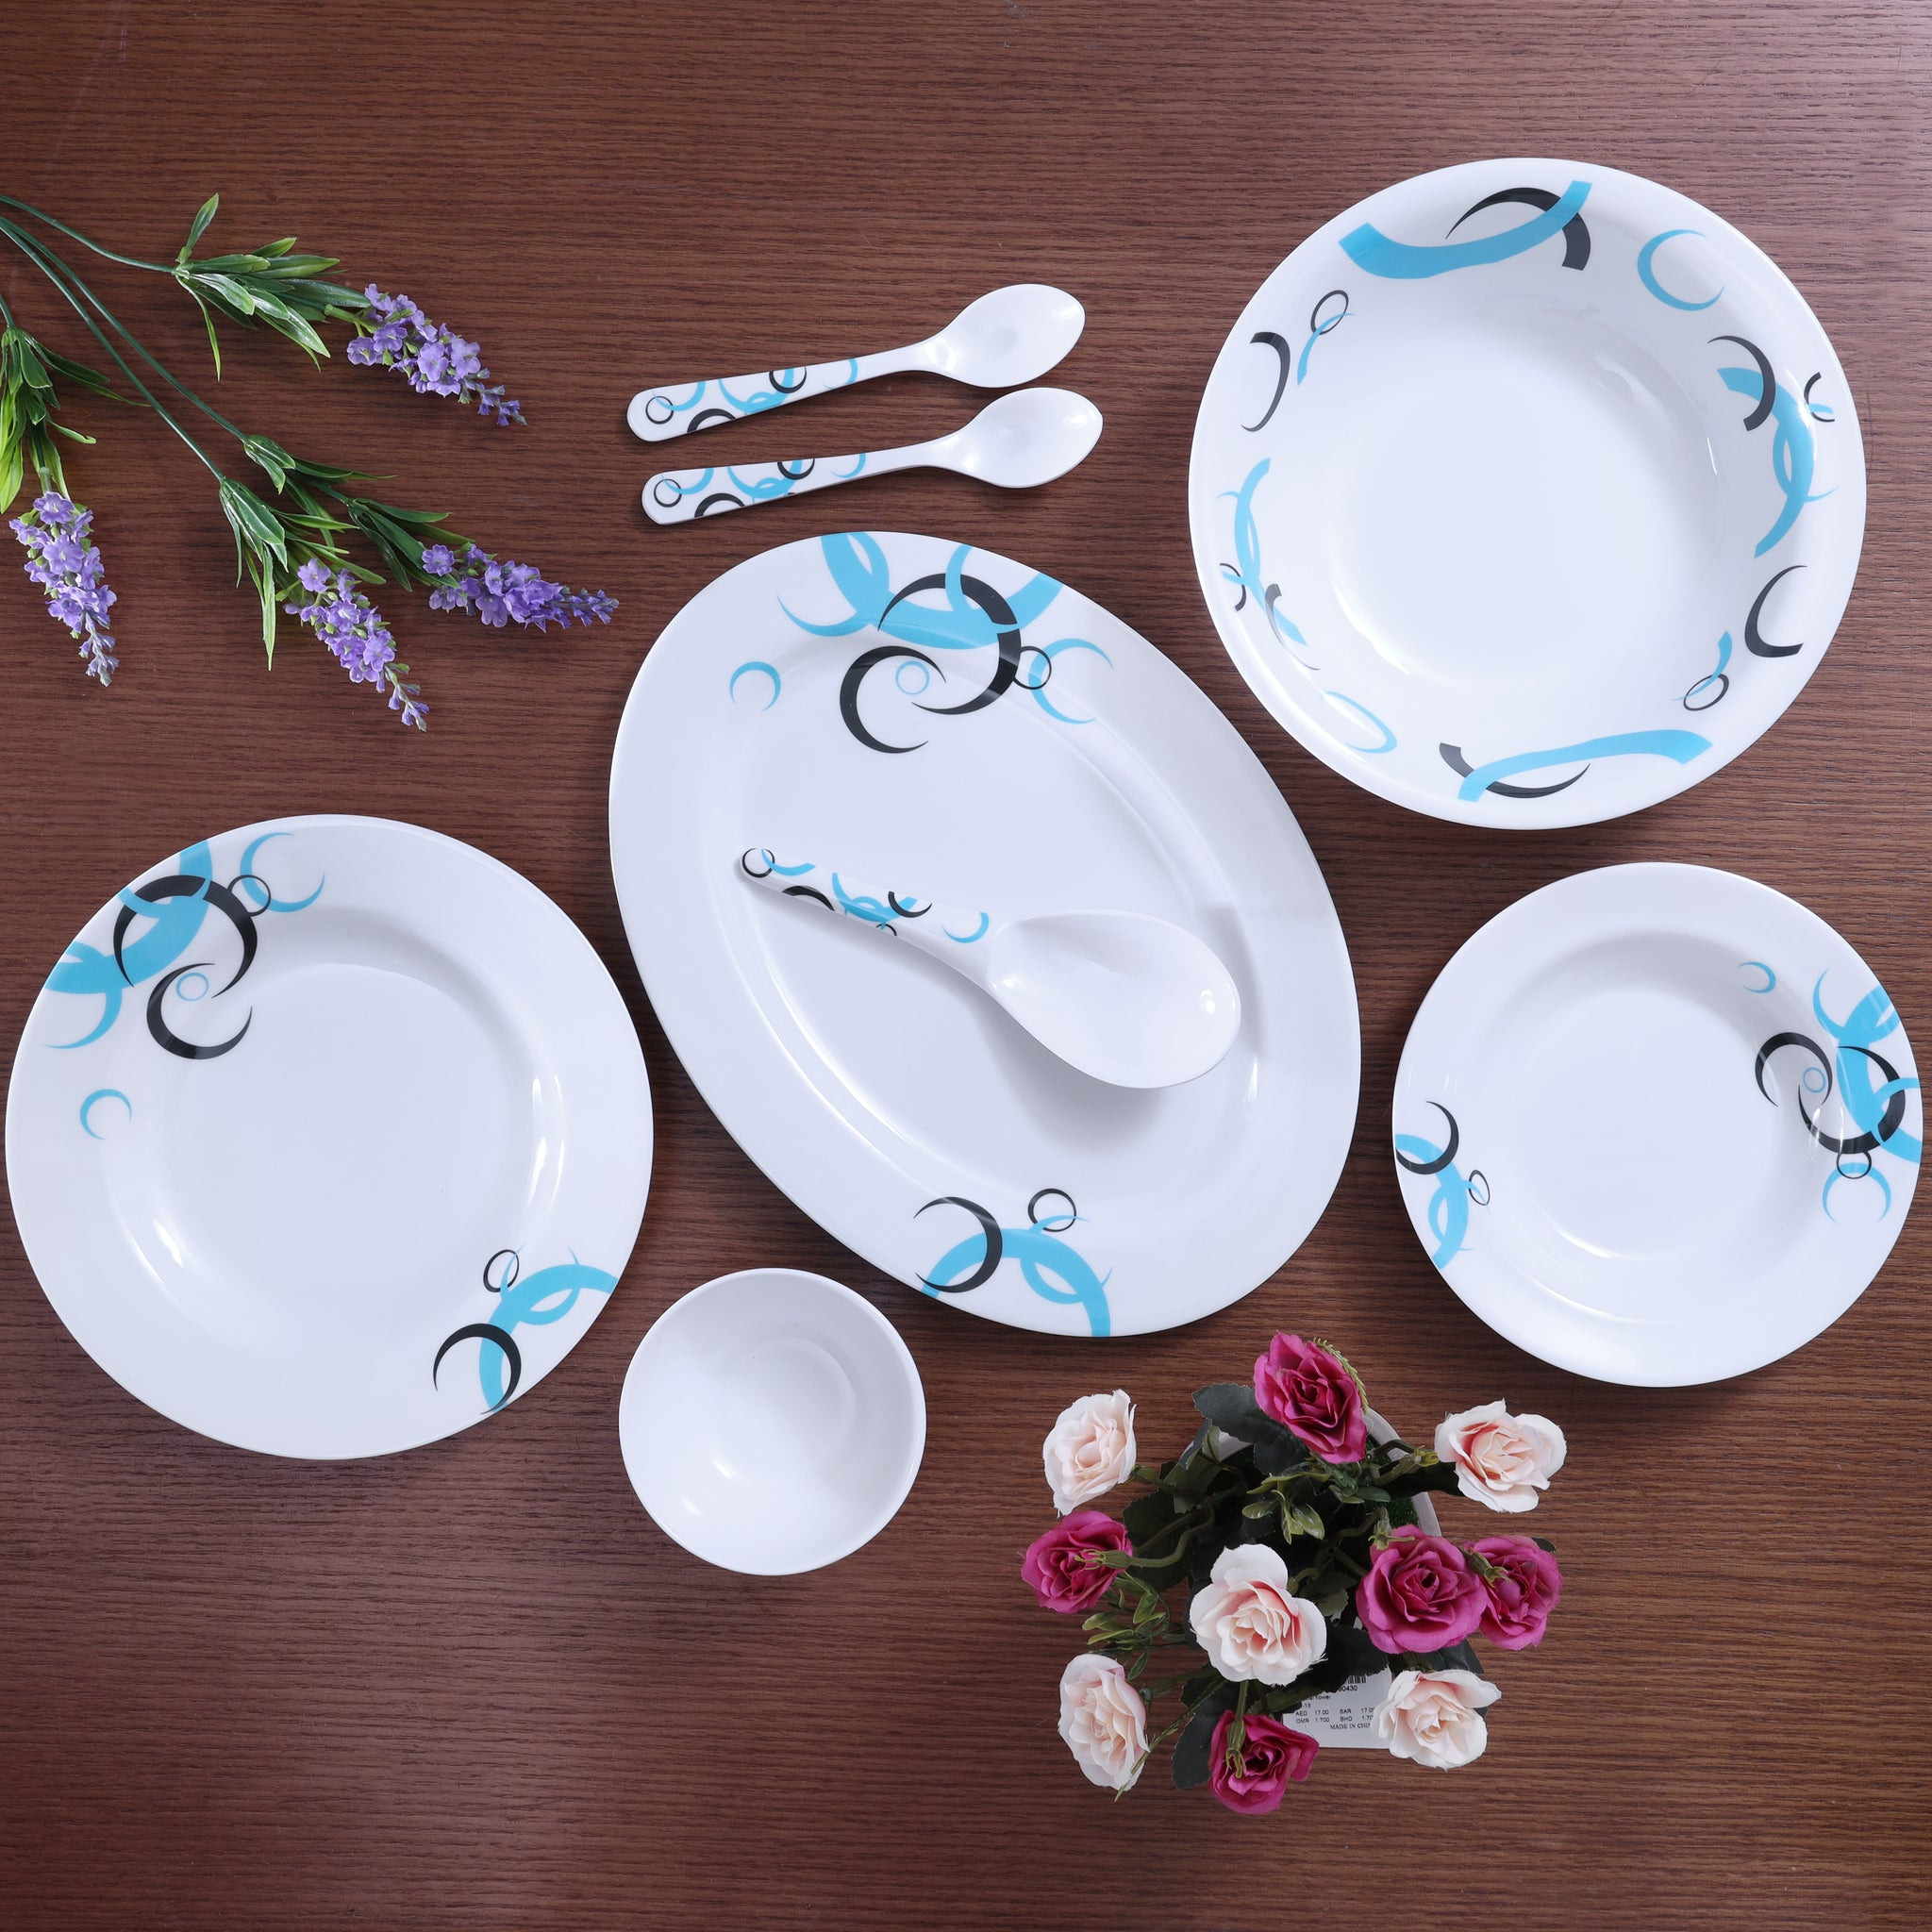 Royalford RF6722 Melamine Ware Dinner Set, 27 Pcs